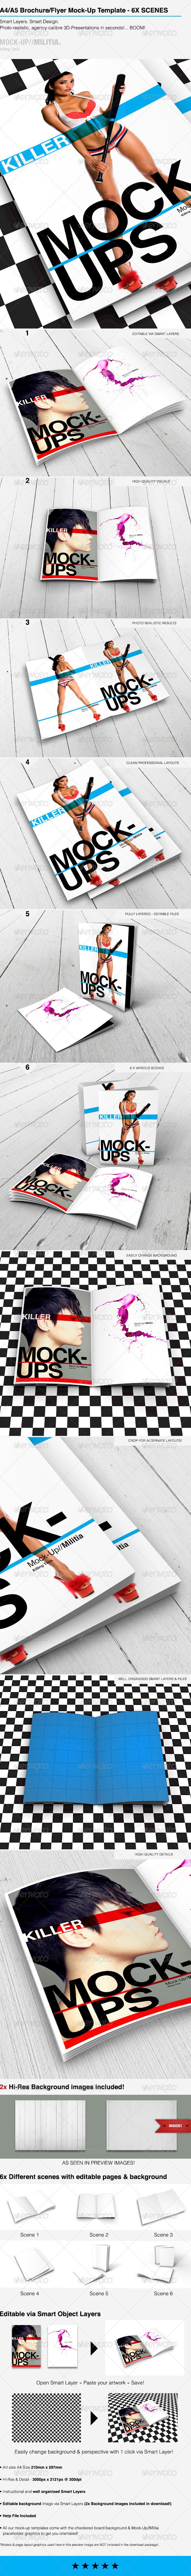 A4 Mock-Up Template - Brochure | Flyer Mock-Up | Download: graphicriver.net/...